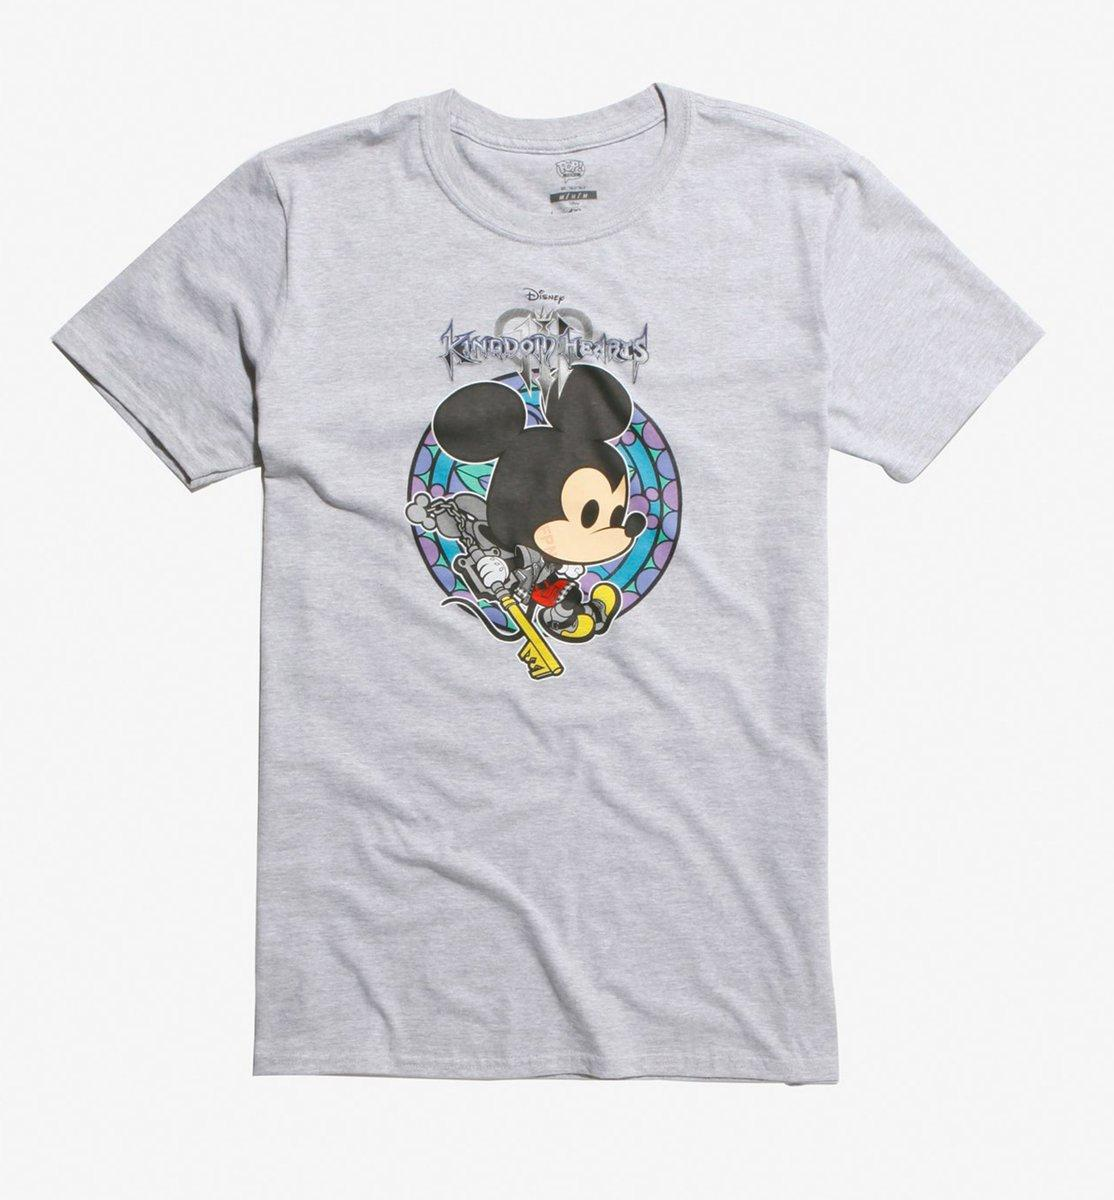 Hot Topic-Exclusive Funko POP! Kingdom Hearts Tees